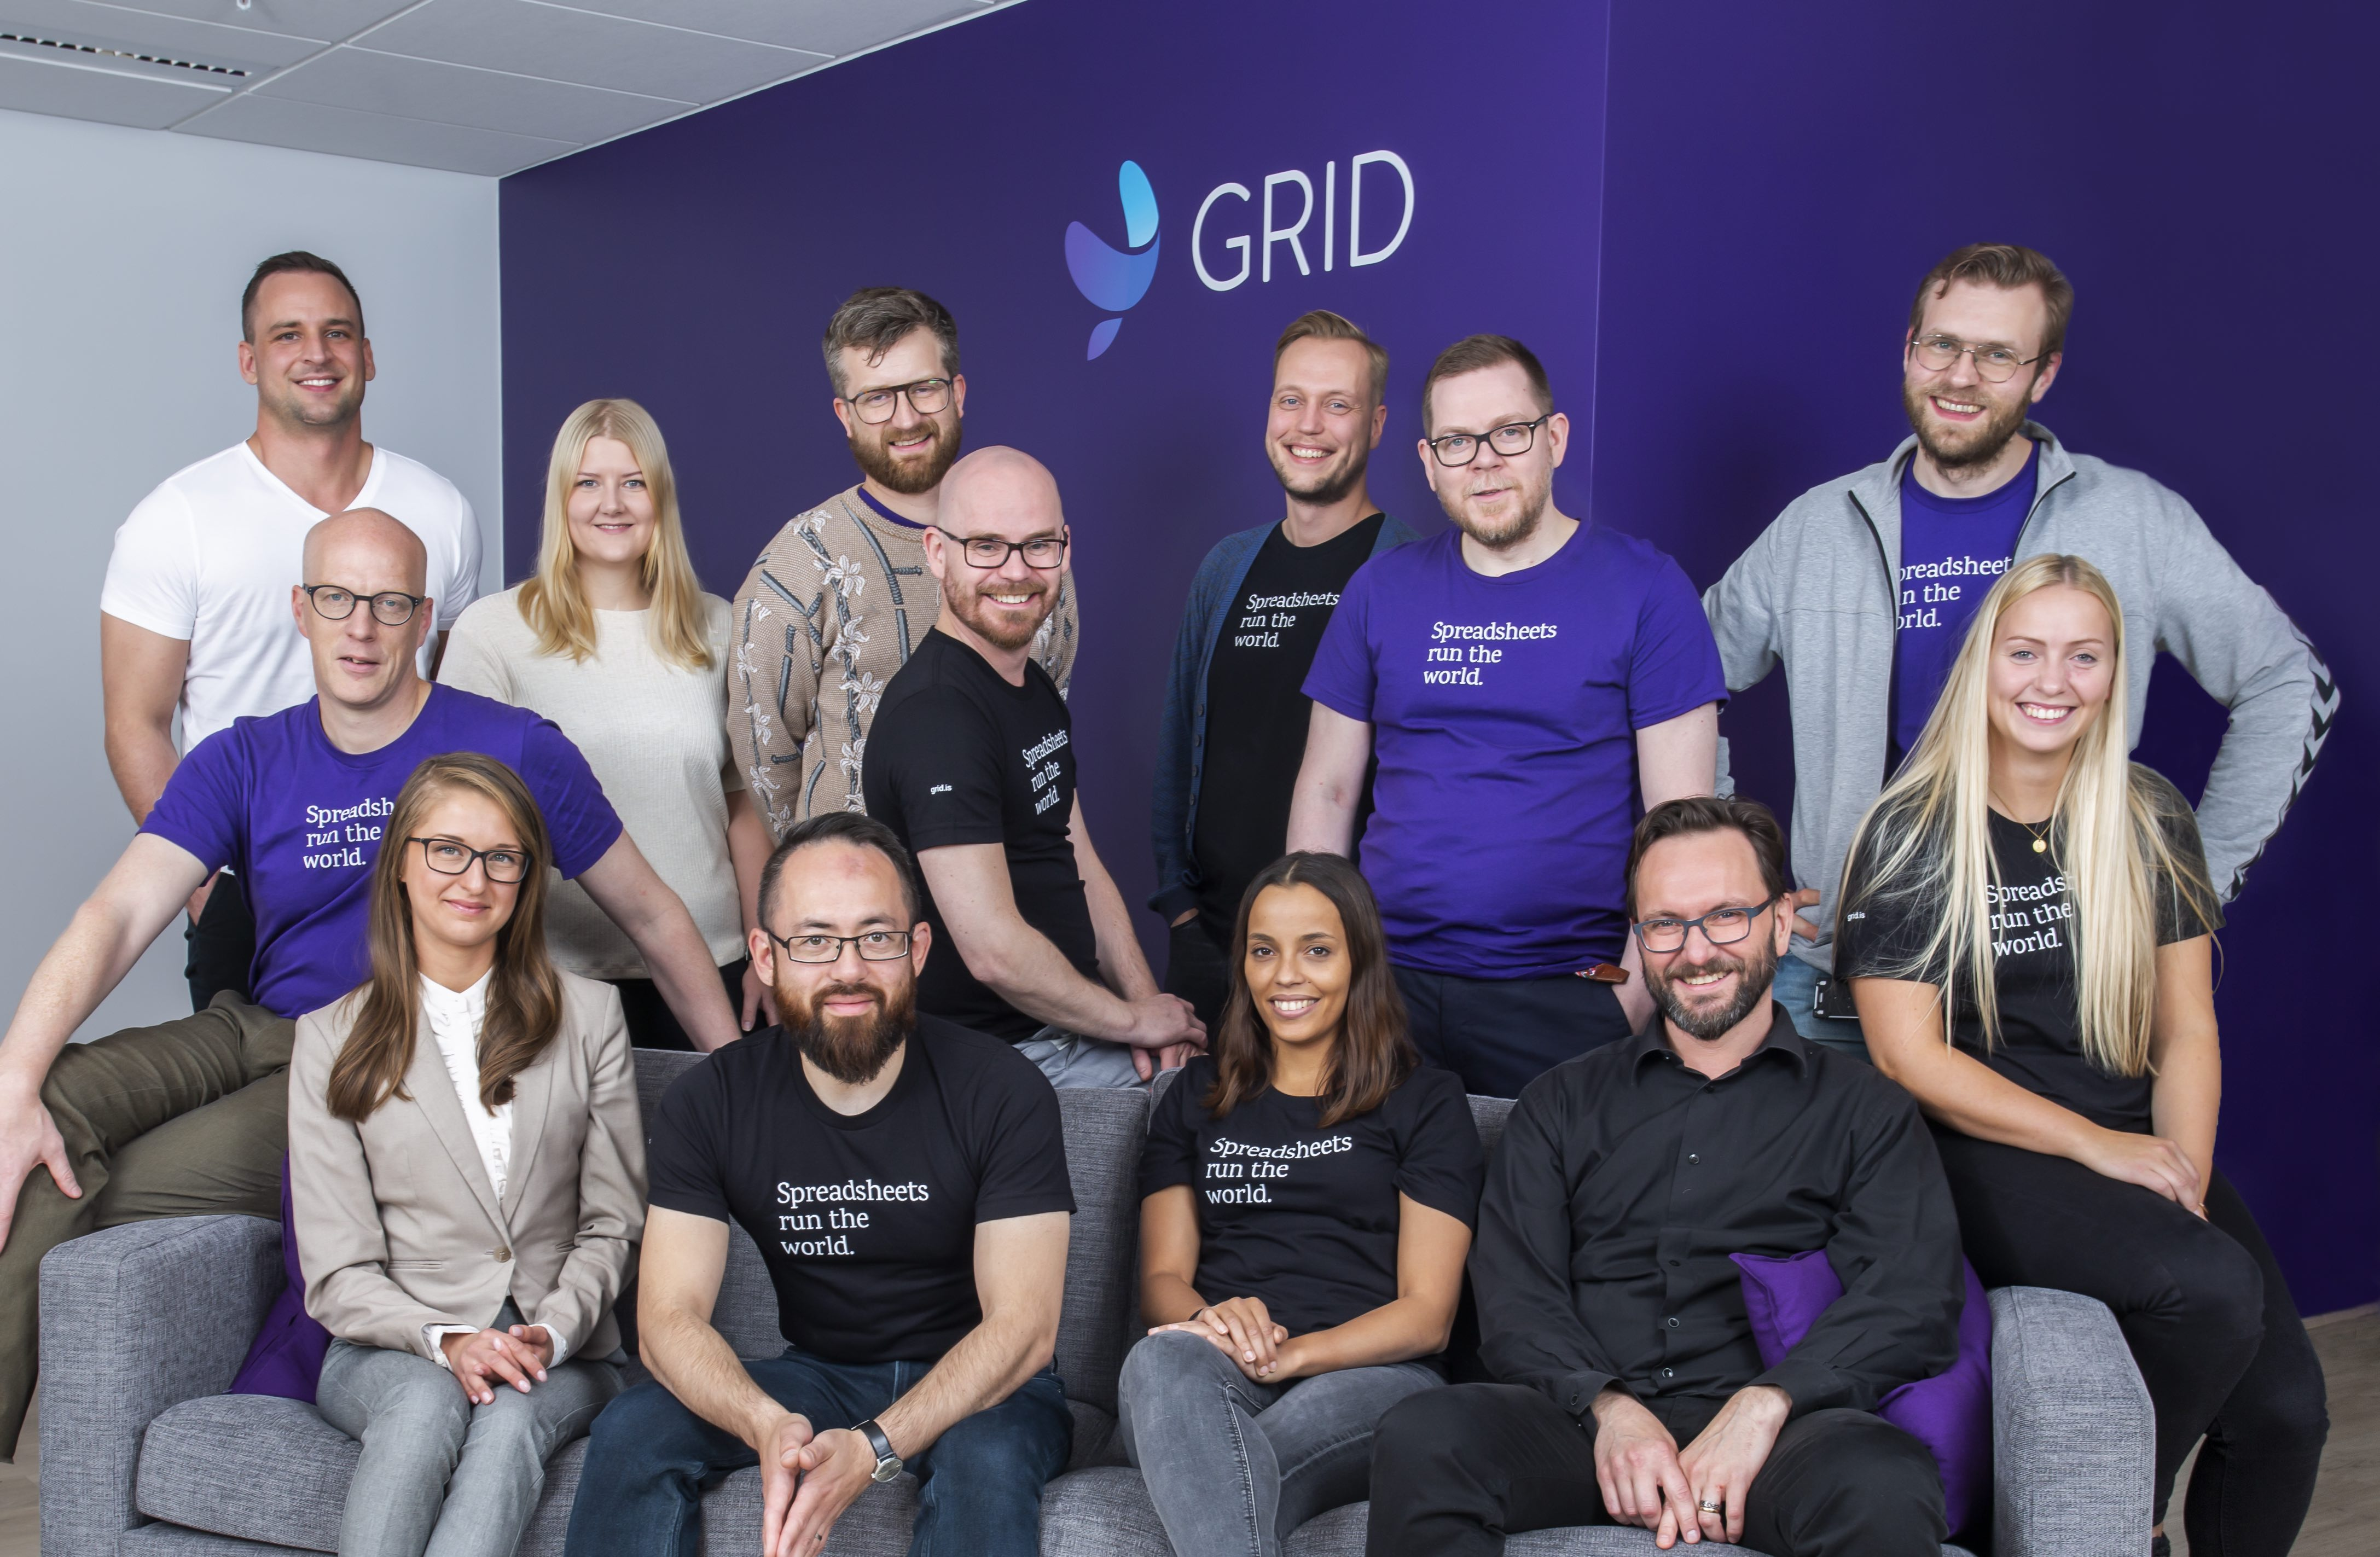 grid-spreadsheets-team-photo